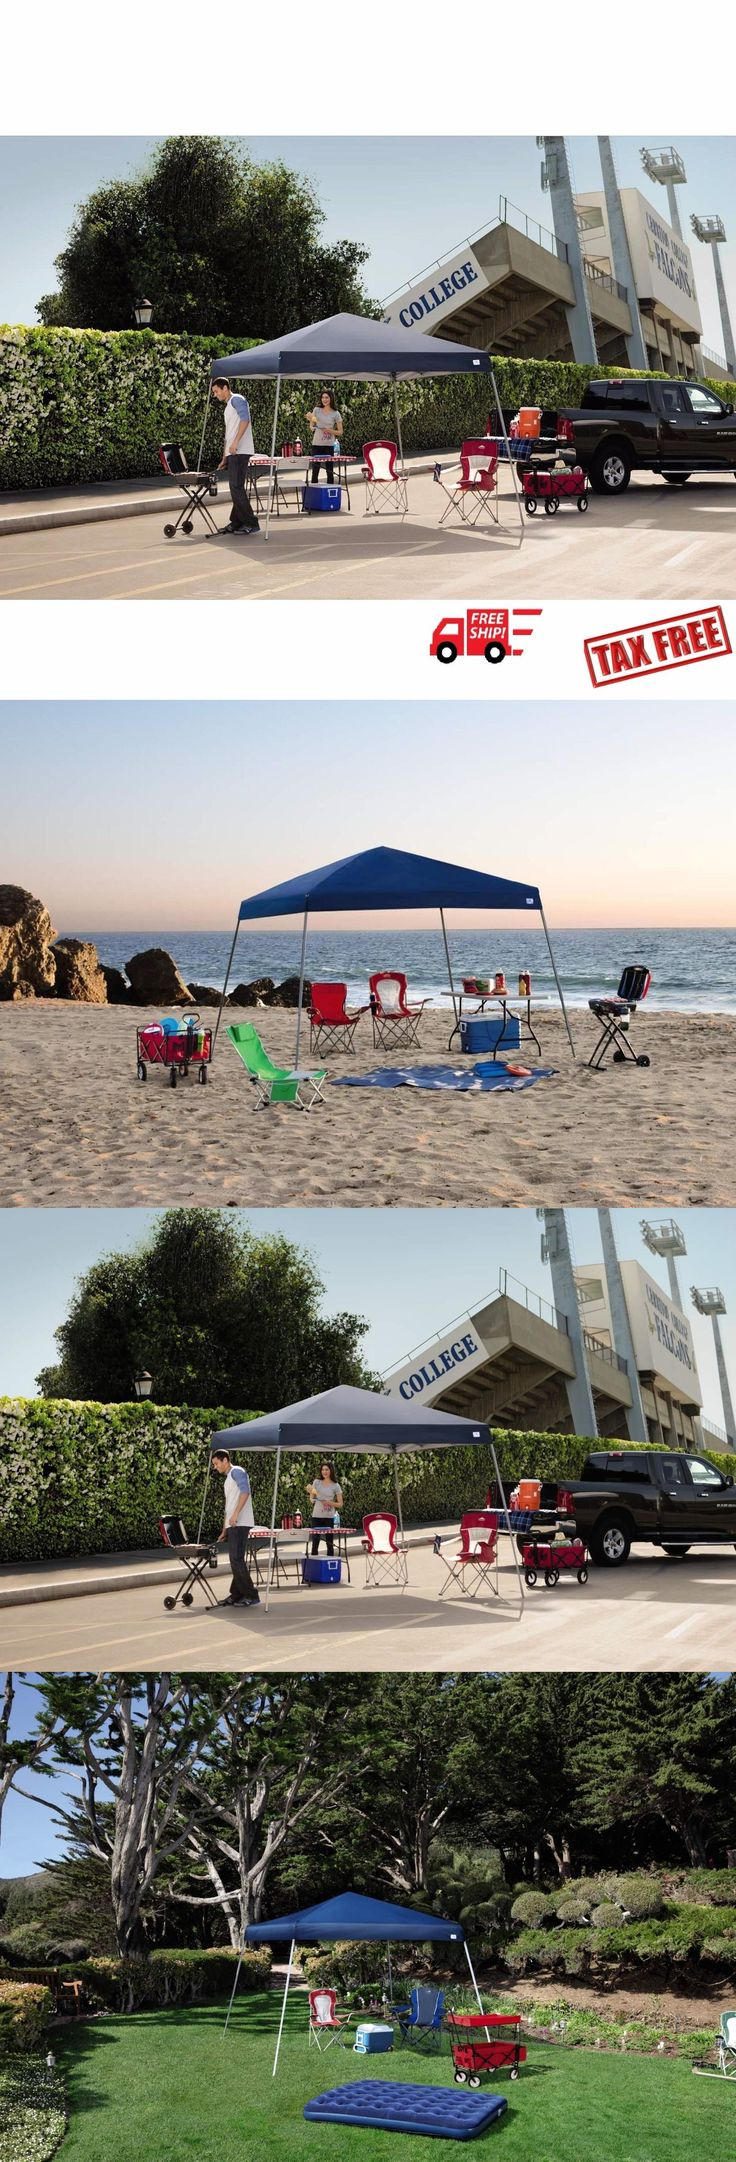 Awnings and Canopies 180992: Instant Canopy Tent 12X12 Outdoor Pop Up Ez Gazebo Patio Beach Sun Shade Steel -> BUY IT NOW ONLY: $79.98 on eBay!